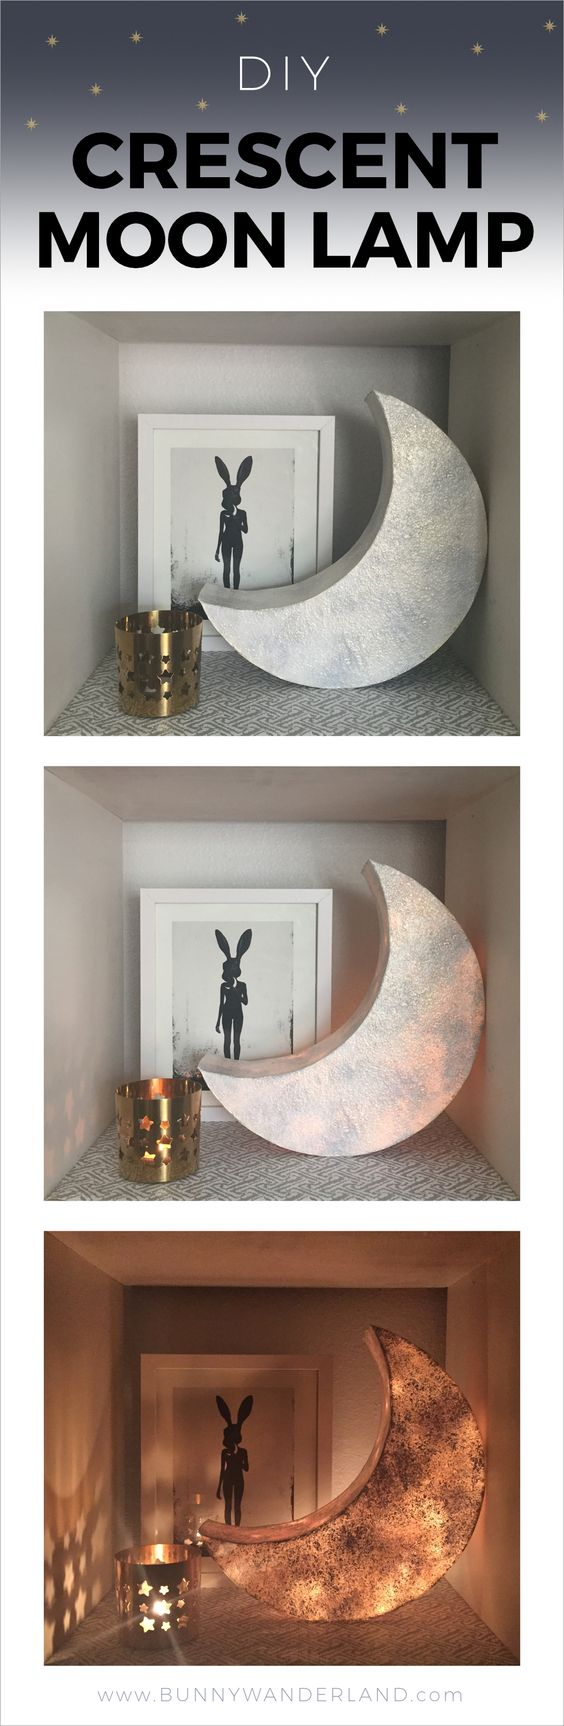 diy-crescent-lamp-ideas-creative-unique-ideas